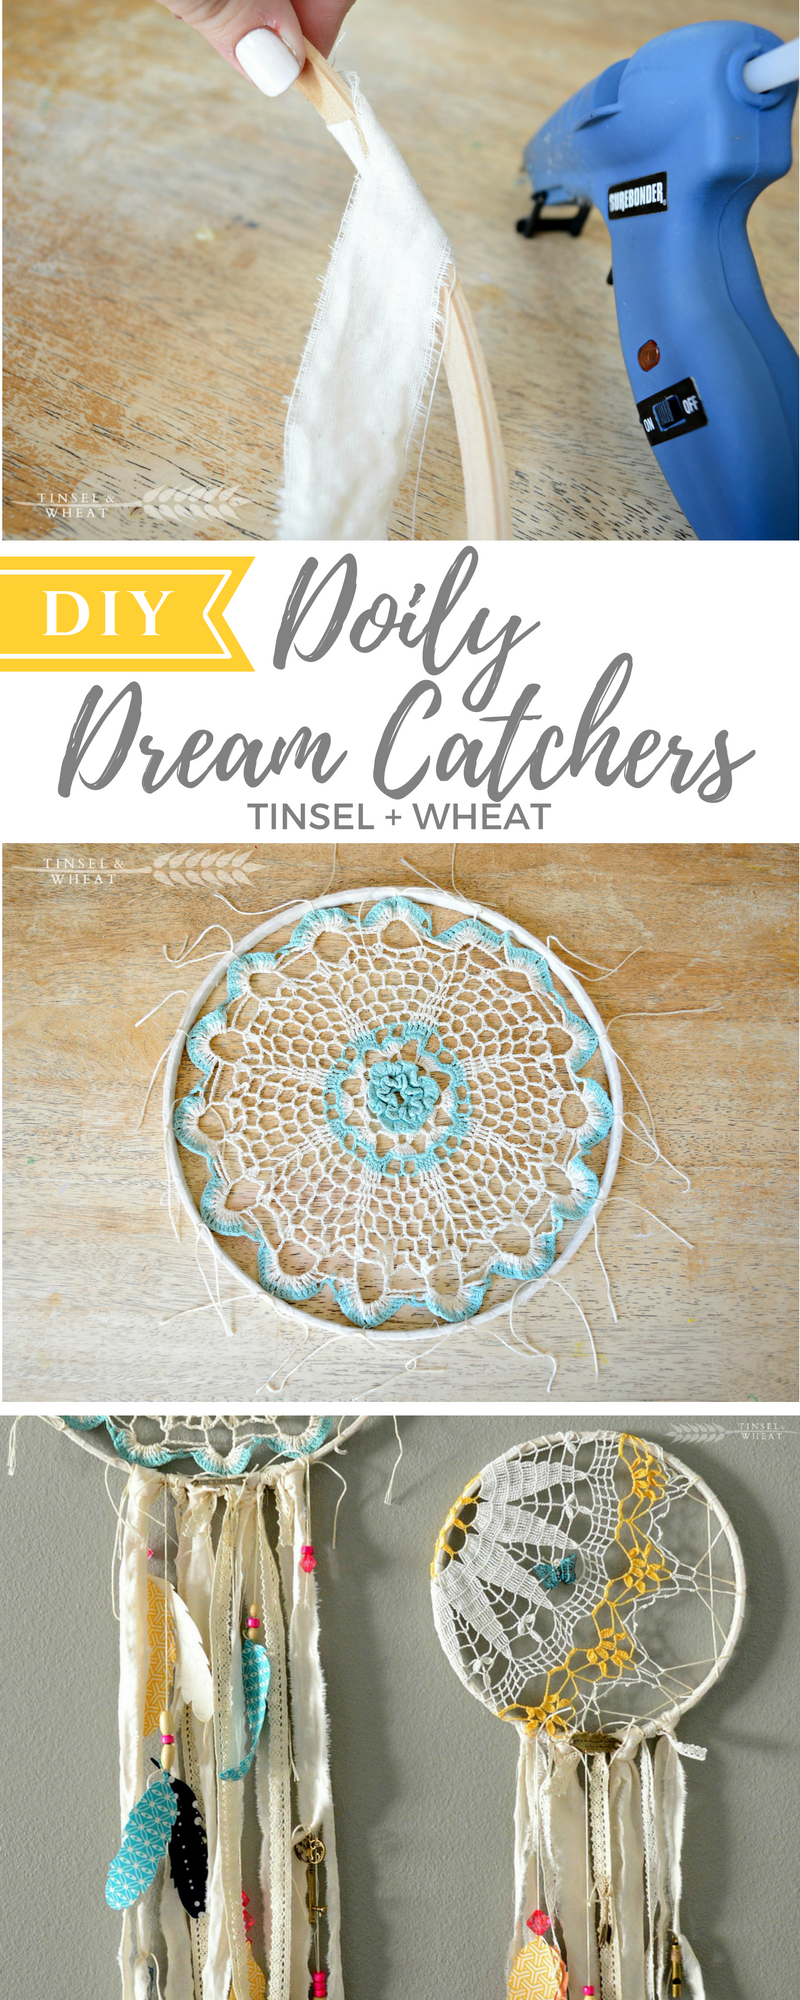 DIY Doily Dream Catchers. Great way to decorate with vintage doilies!